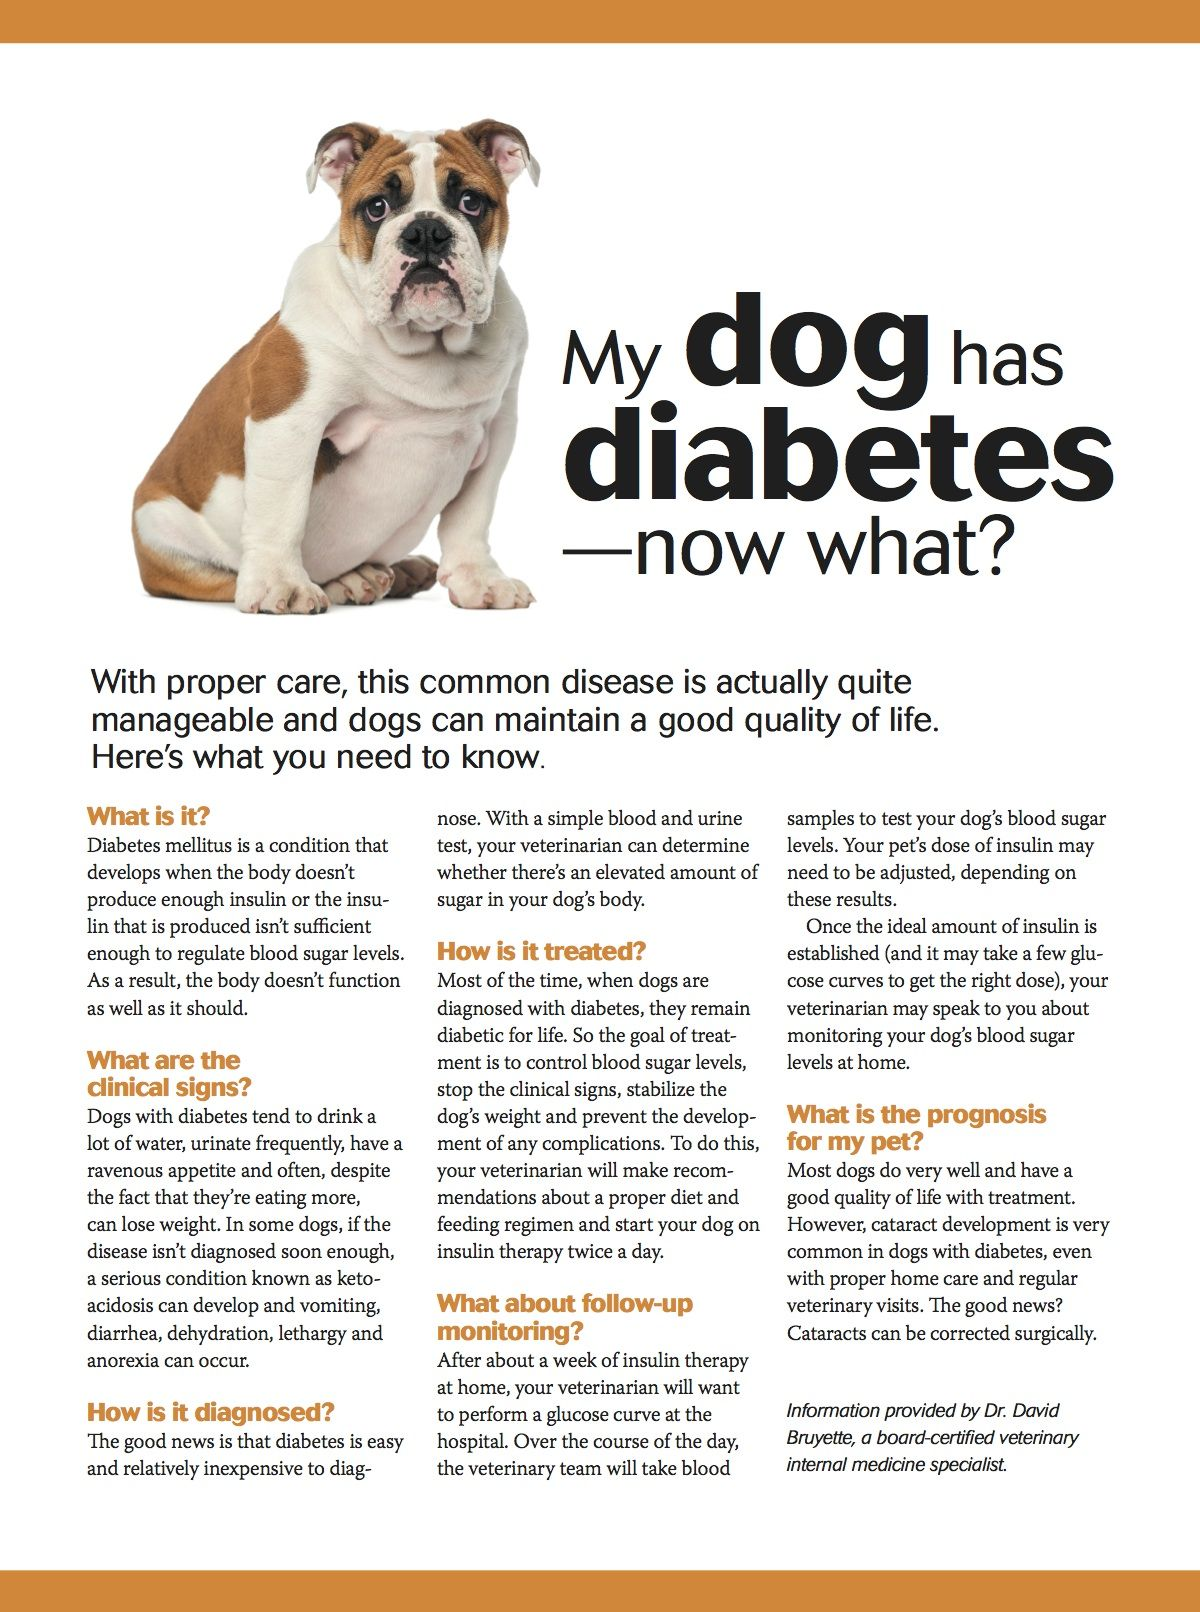 My dog has diabetes now what? pets pethealth